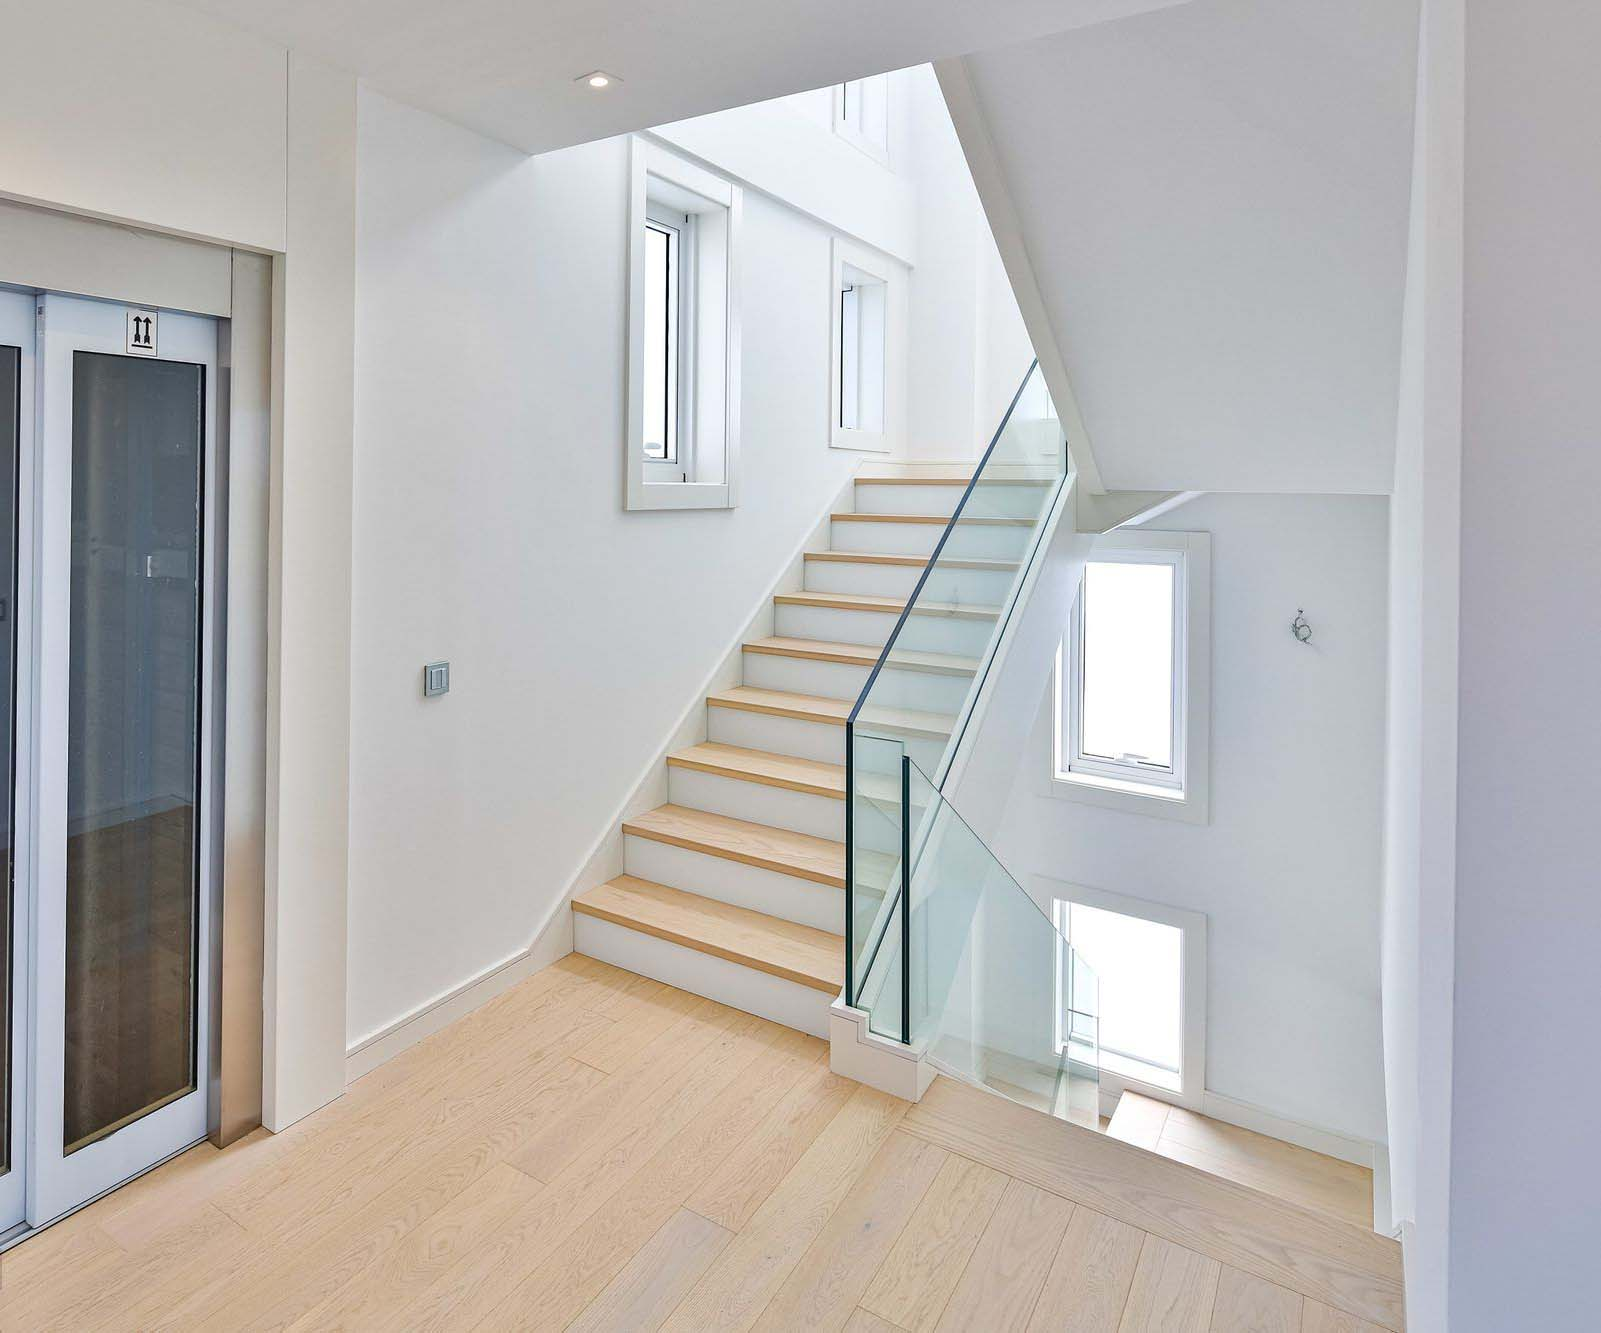 Light and bright modern staircase design. Light hardwood floors and steps with white risers and glass railings.